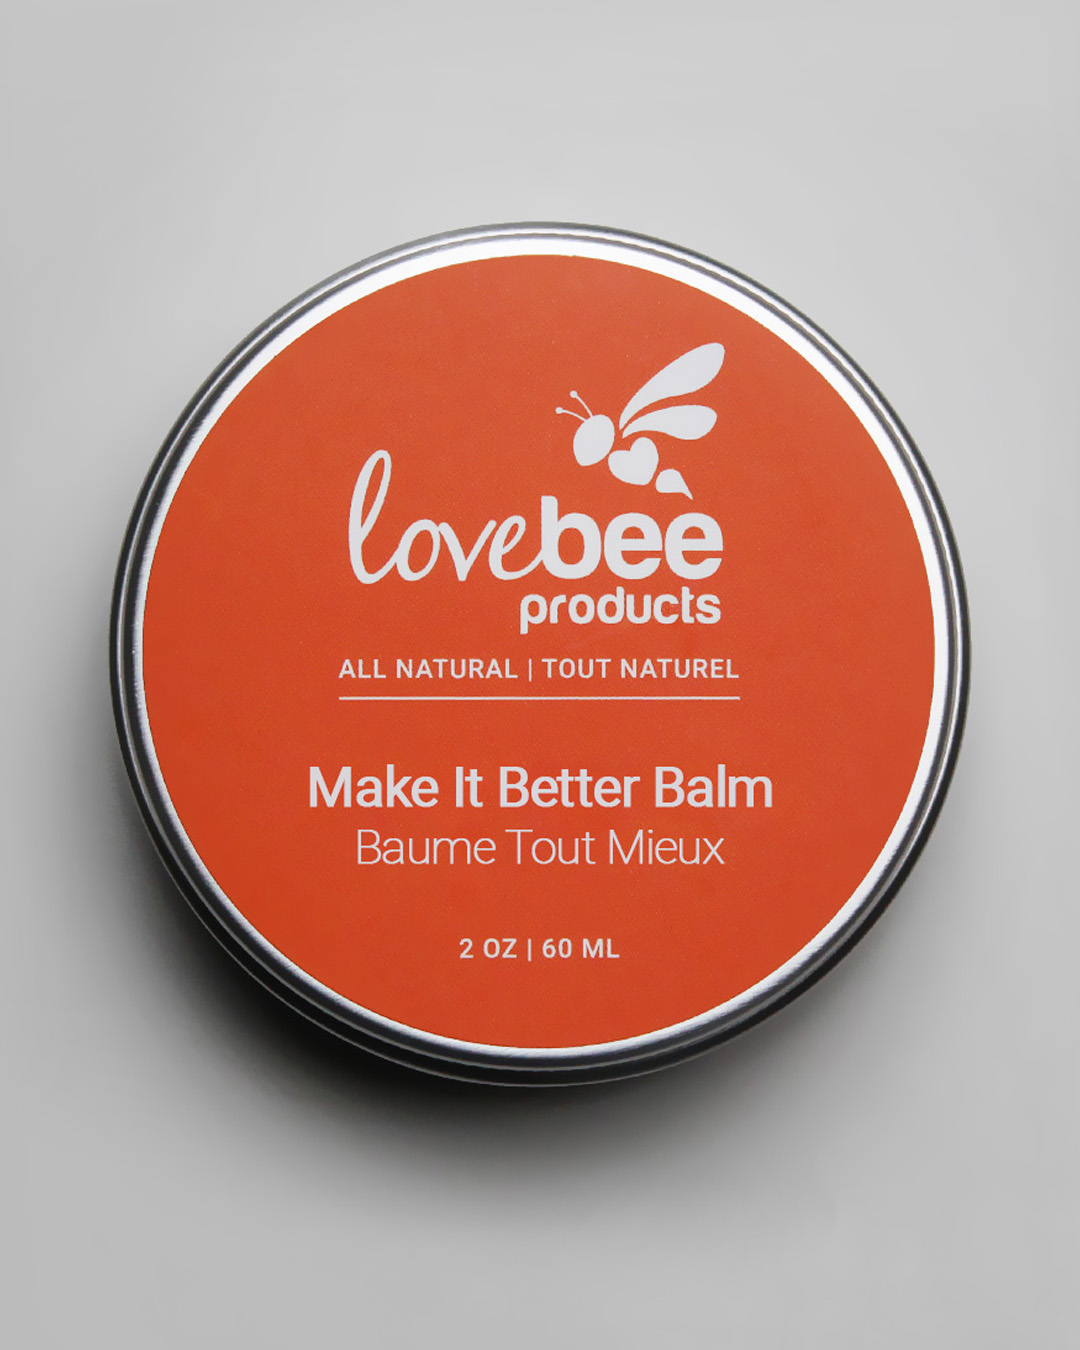 Make It Better Balm